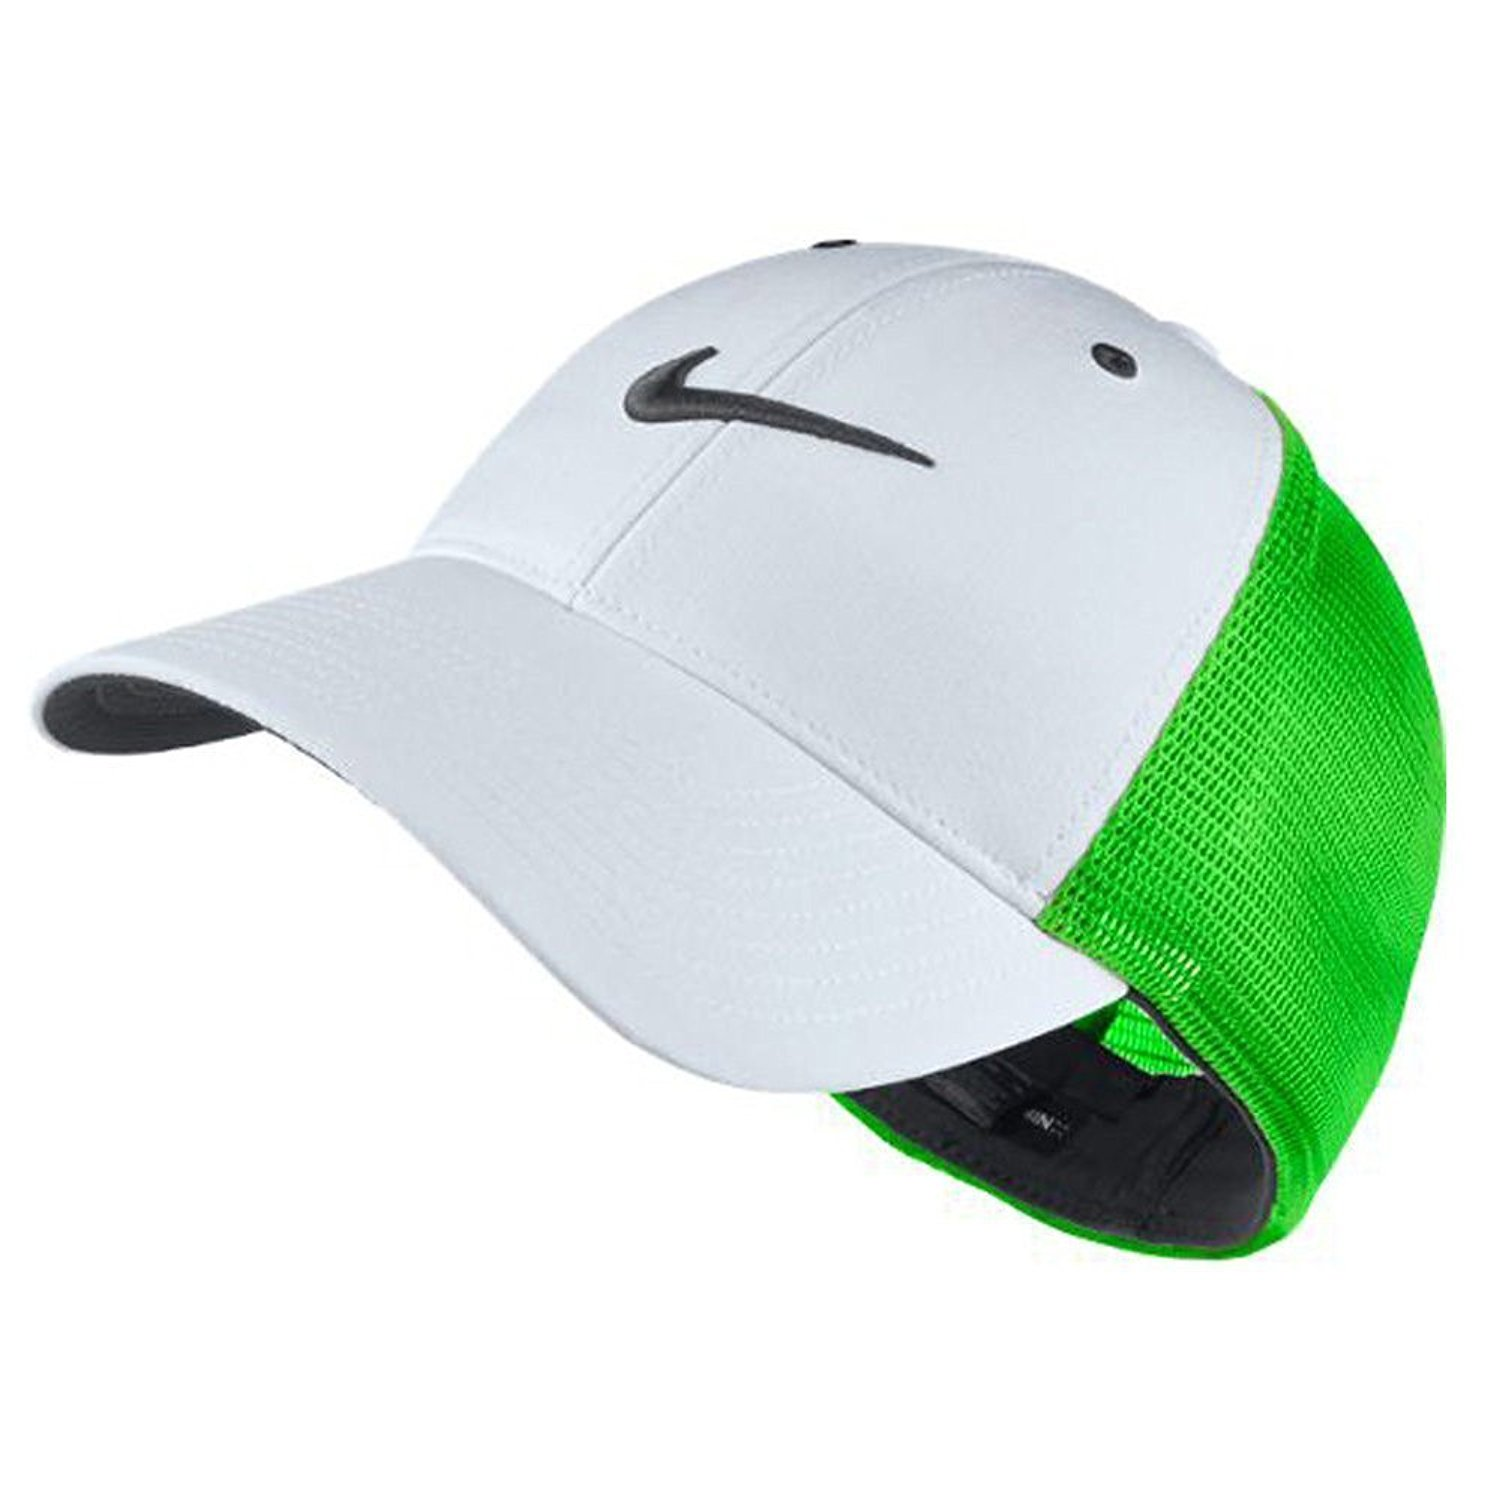 02de5f997605d Cheap Nike Mesh Hat, find Nike Mesh Hat deals on line at Alibaba.com